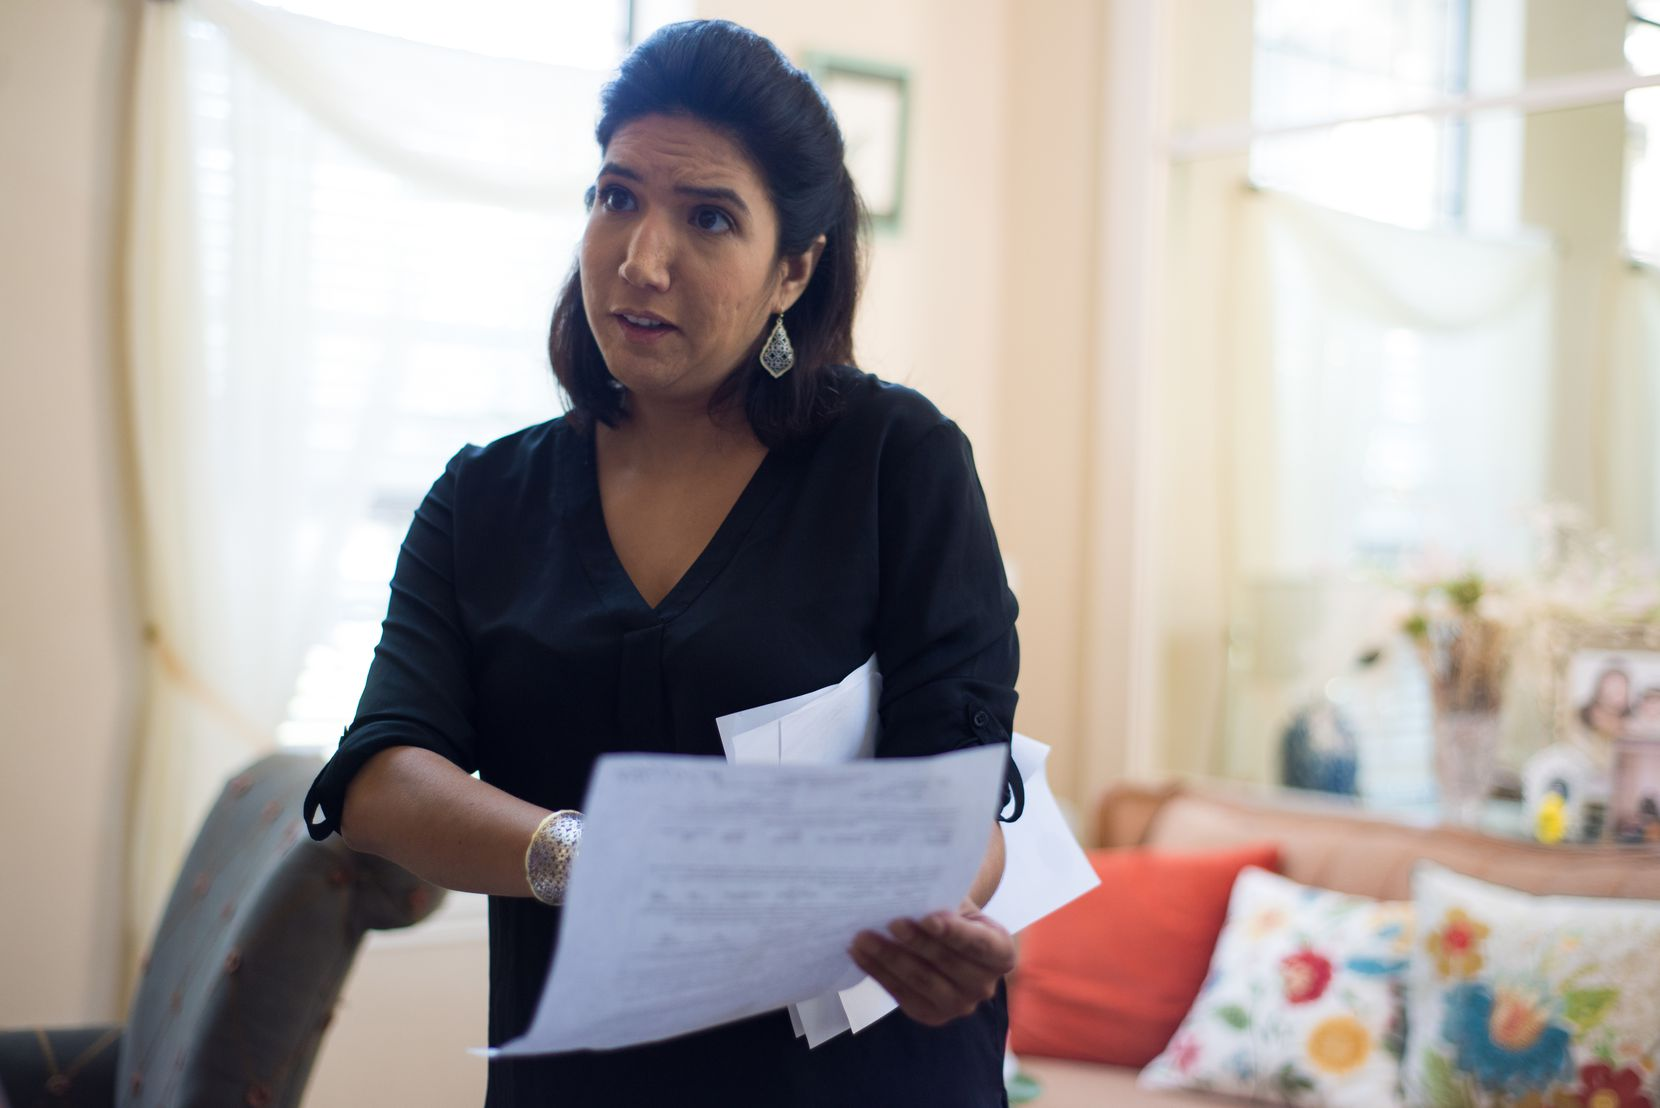 A rent-to-company threatened to file criminal charges against Austin resident Melinda Sandlin after she stopped making payments. Sandlin looks through her rental purchase agreement and other related documents at her Austin home.